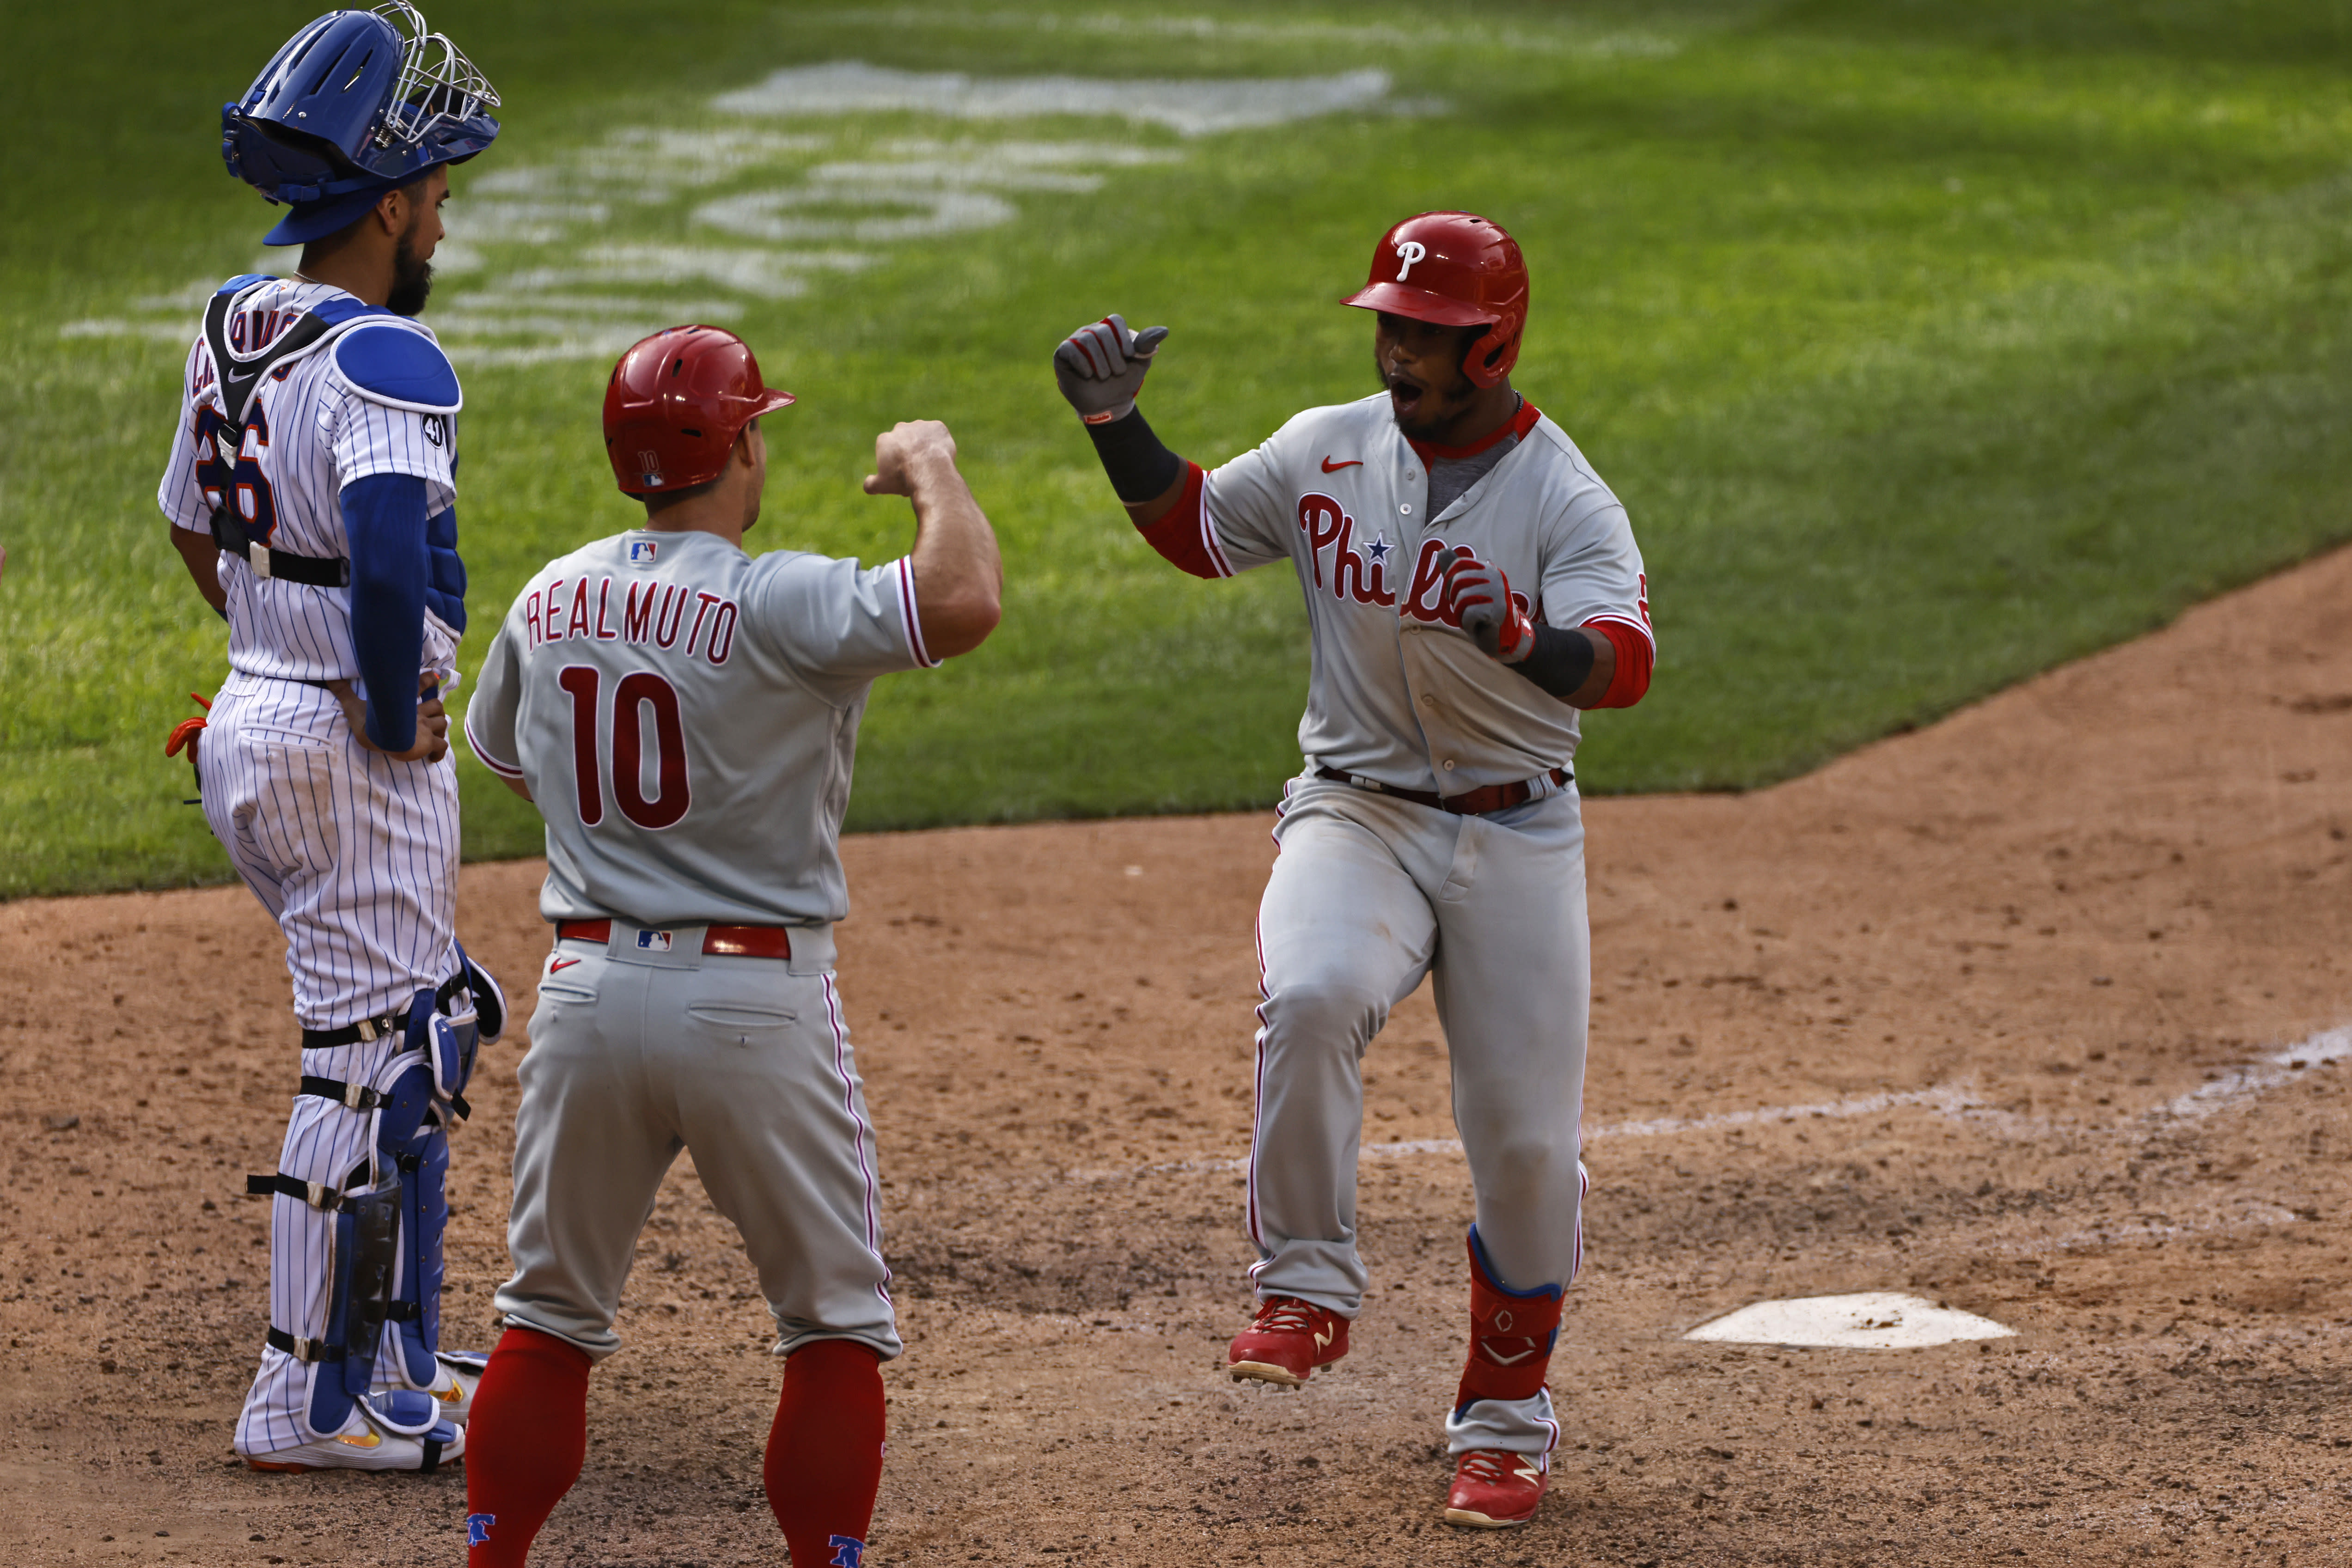 Philadelphia Phillies' Jean Segura celebrates hitting a two-run home run with J.T. Realmuto (10) in front of New York Mets catcher Robinson Chirinos during the 10th inning of a baseball game on Monday, Sept. 7, 2020, in New York. (AP Photo/Adam Hunger)